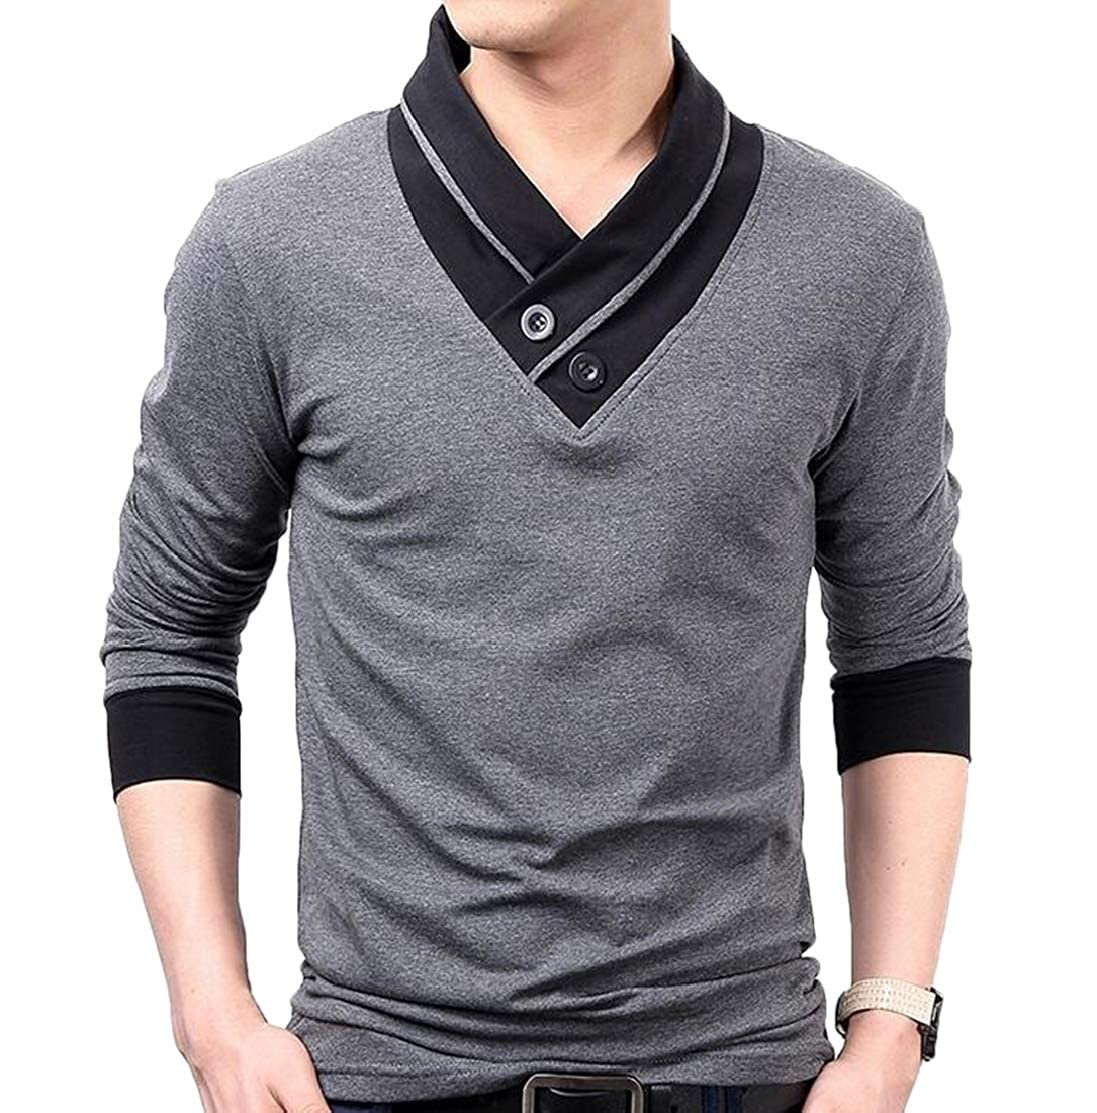 Domple Mens Stitching Cotton Slim Fit Fashion V-Neck Long Sleeve Tee T-Shirts